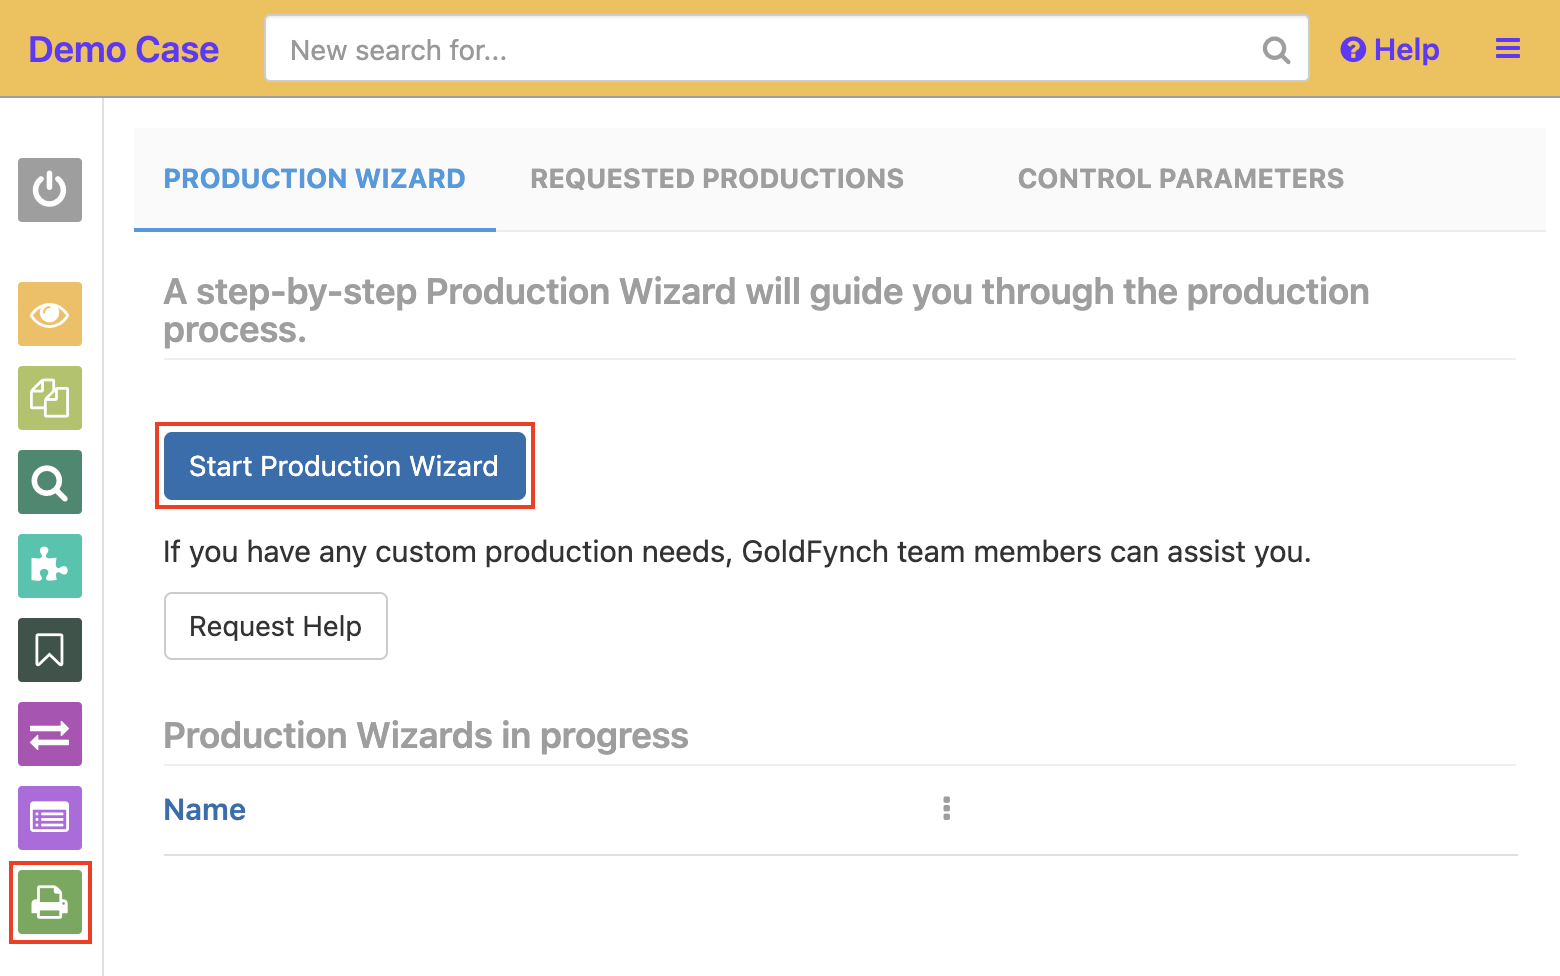 Navigate to the productions view and click on the Start Production Wizard button